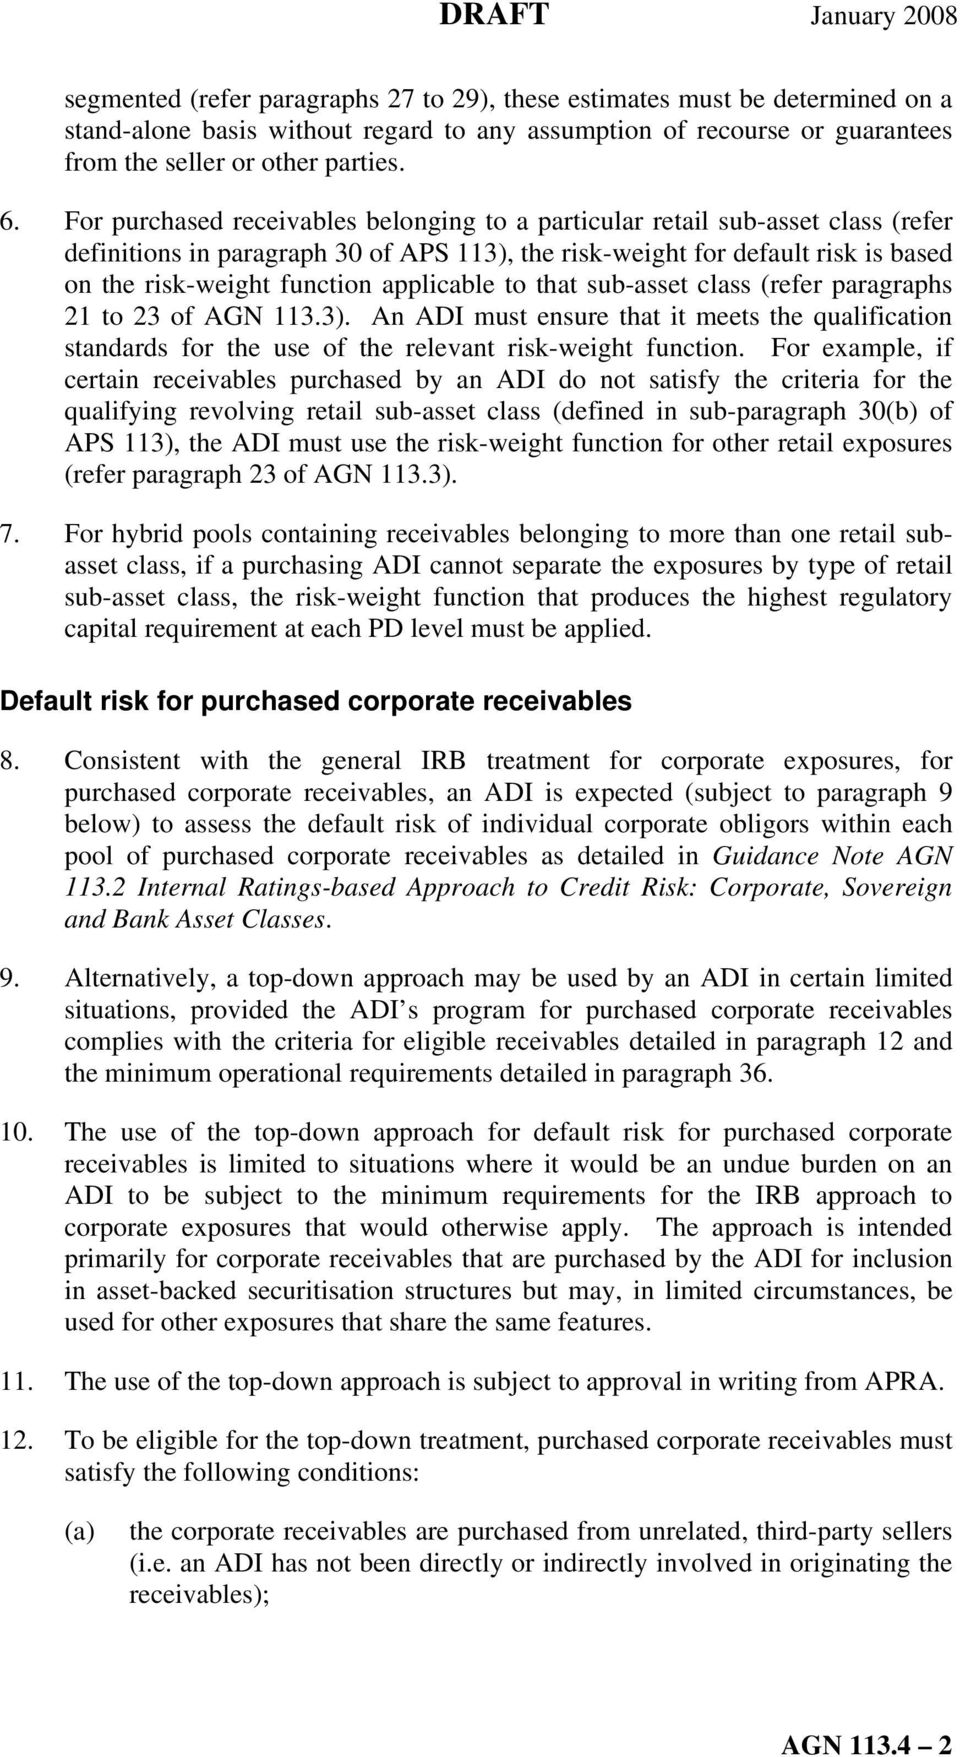 applicable to that sub-asset class (refer paragraphs 21 to 23 of AGN 113.3). An ADI must ensure that it meets the qualification standards for the use of the relevant risk-weight function.